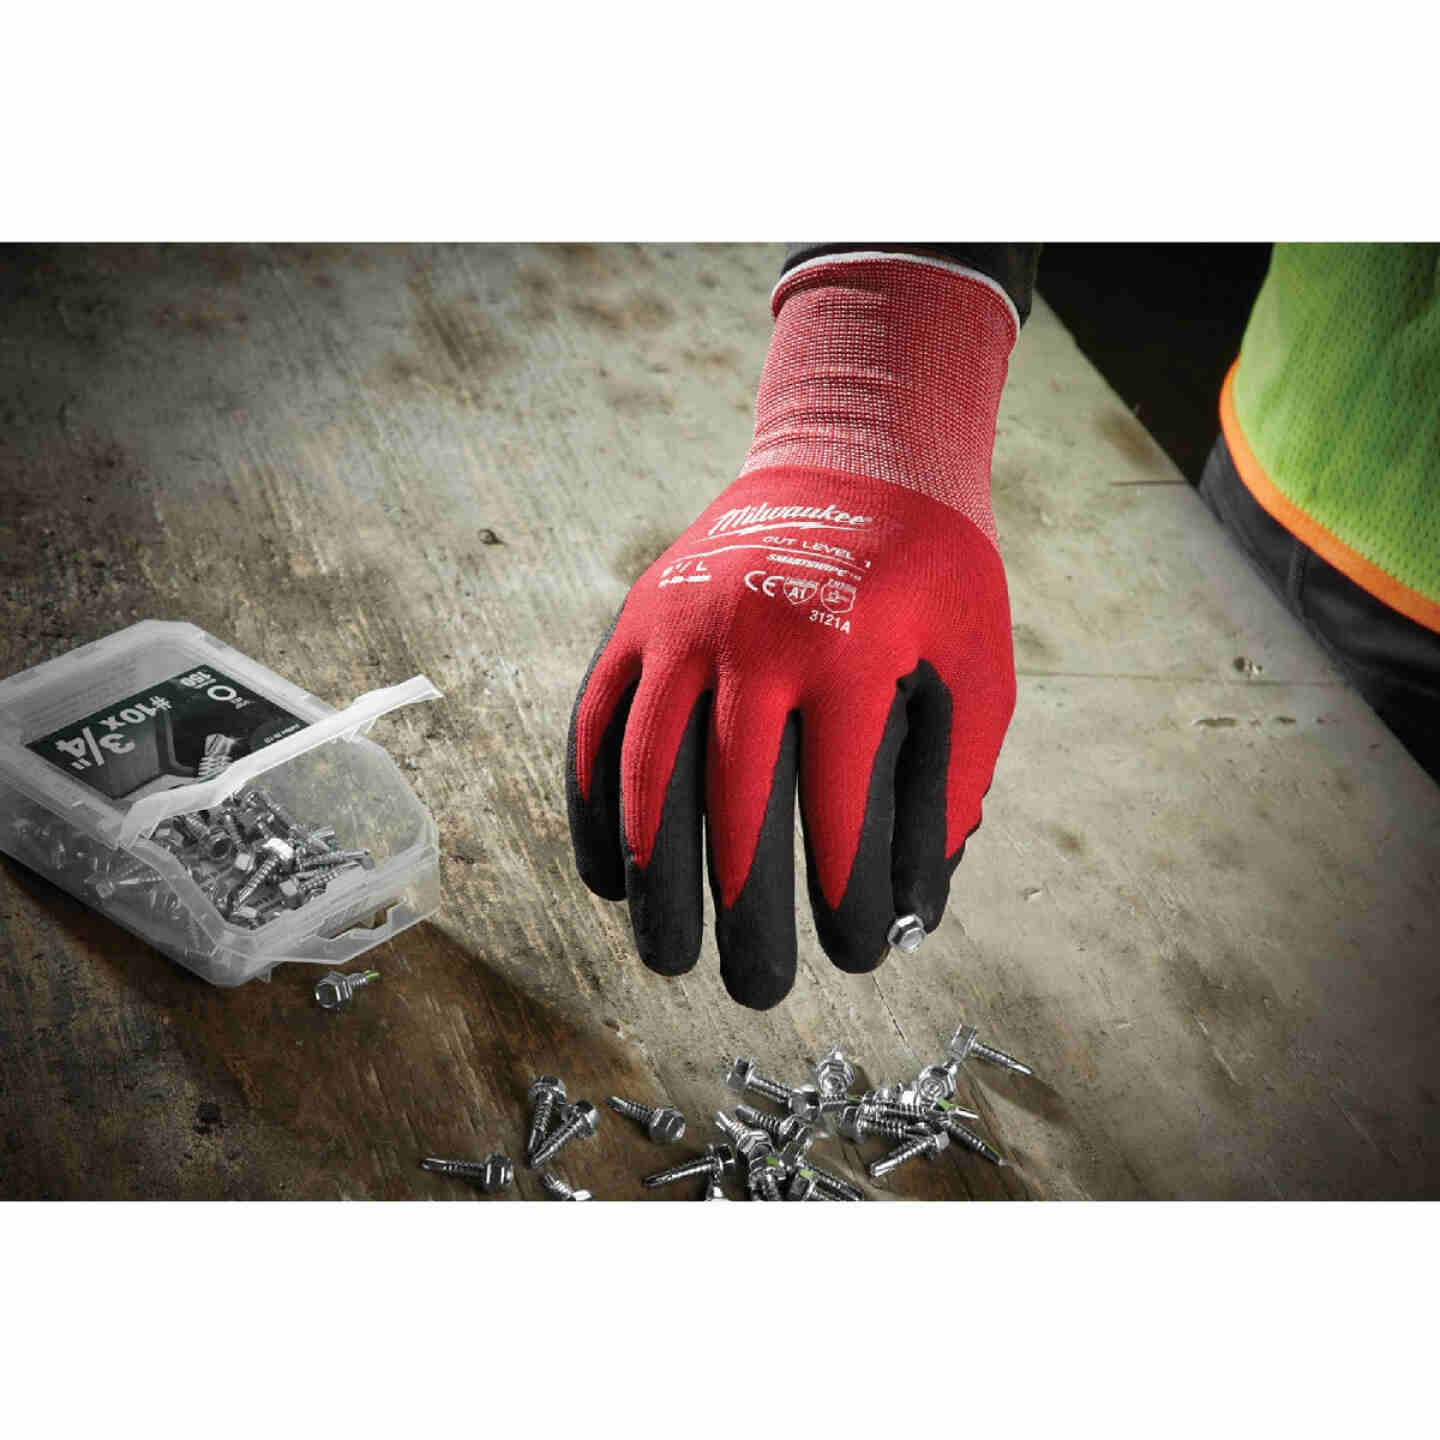 Milwaukee Unisex Large Nitrile Coated Cut Level 1 Work Glove Image 3